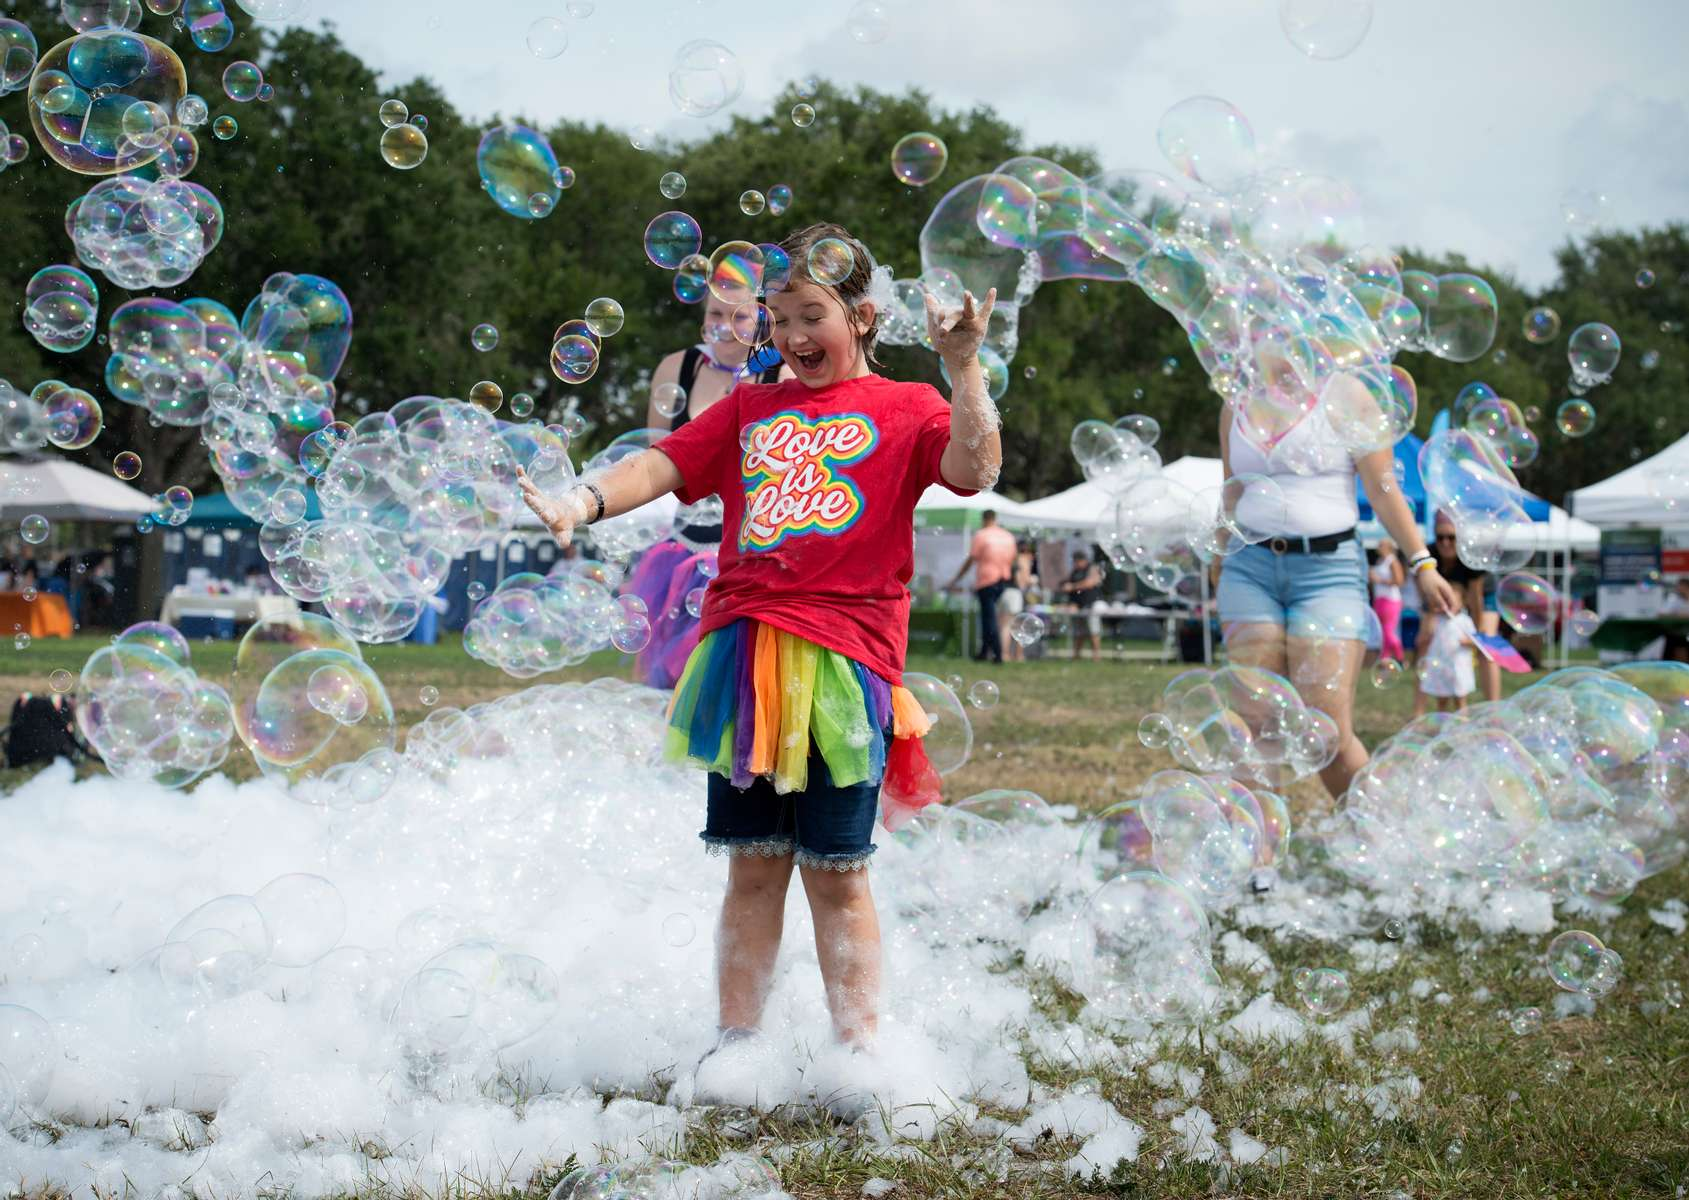 Shane Summers, a gender-fluid preteen, plays in a field of large bubbles at the city's OUT in the Park Gay Pride Festival on Tampa Bay.  Instead of hosting one of the  largest Gay Pride parades in the country, local organizers opted for a series of smaller events spread throughout June, considered Gay Pride Month.The scaled back celebrations were due to COVID-19 precautions, though few attending Saturday's waterfront OUT in the Park festival used masks.